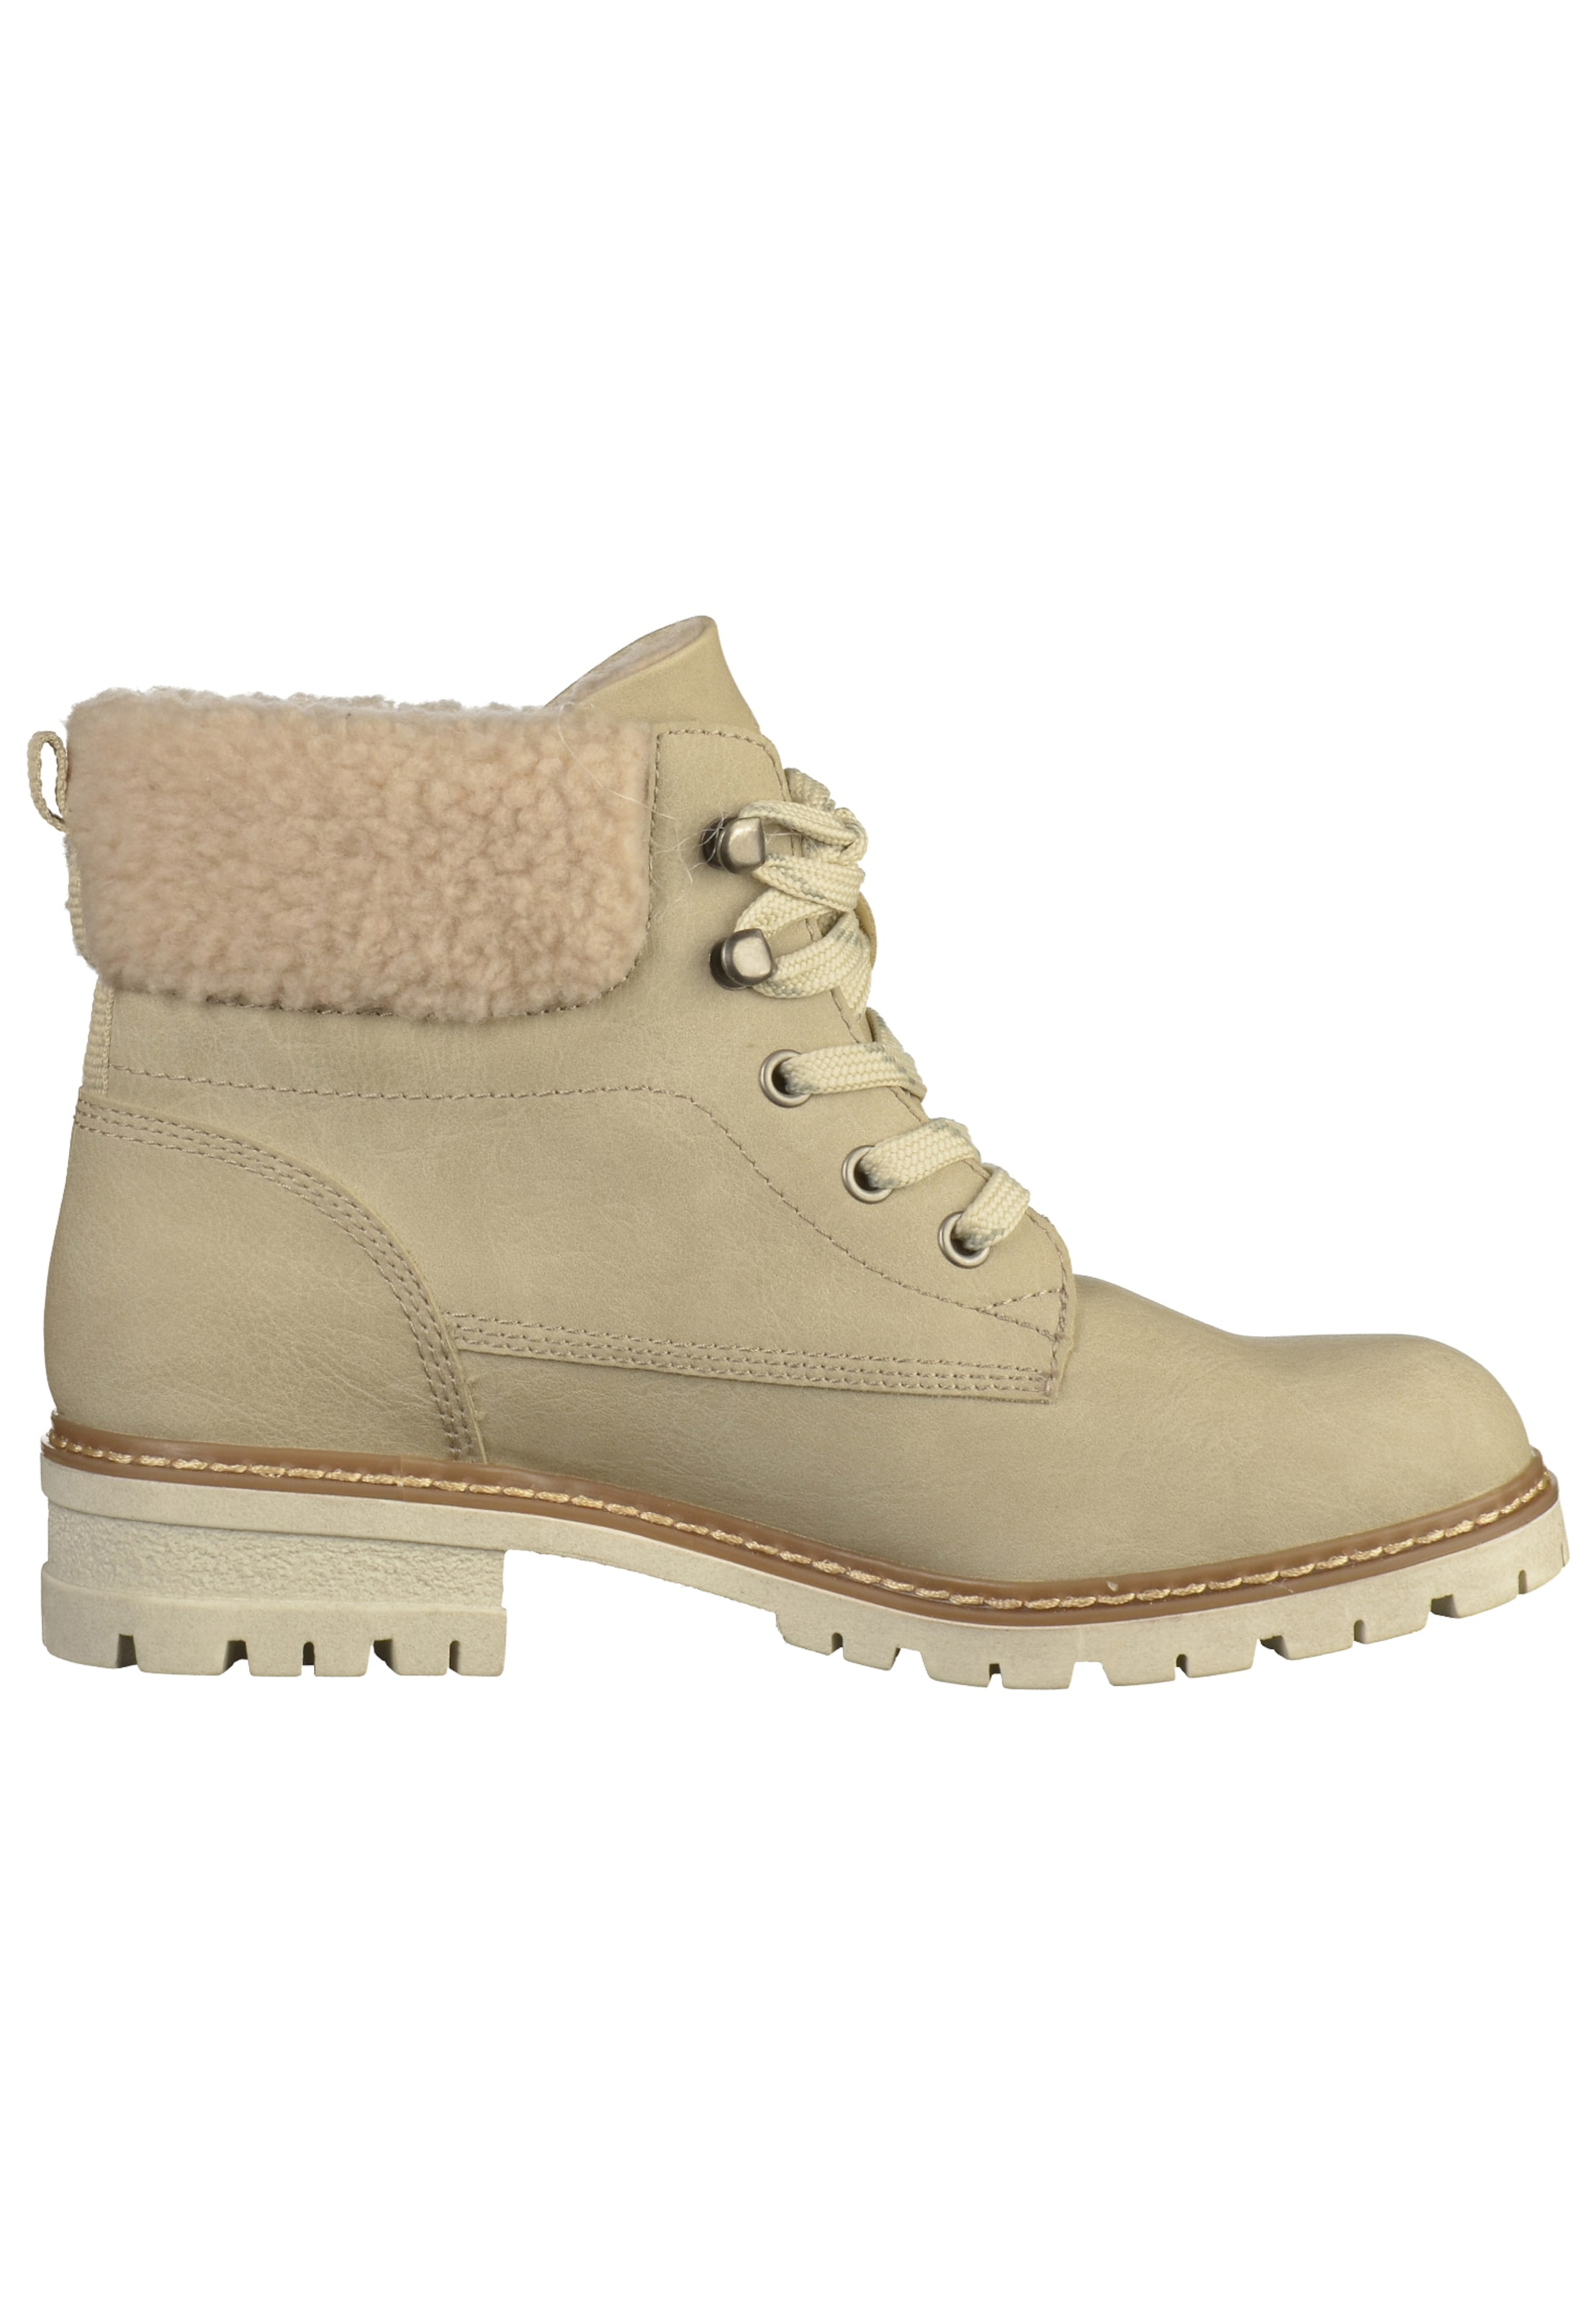 oliver À En Lacets Red Label Beige Bottines S cJKlF1